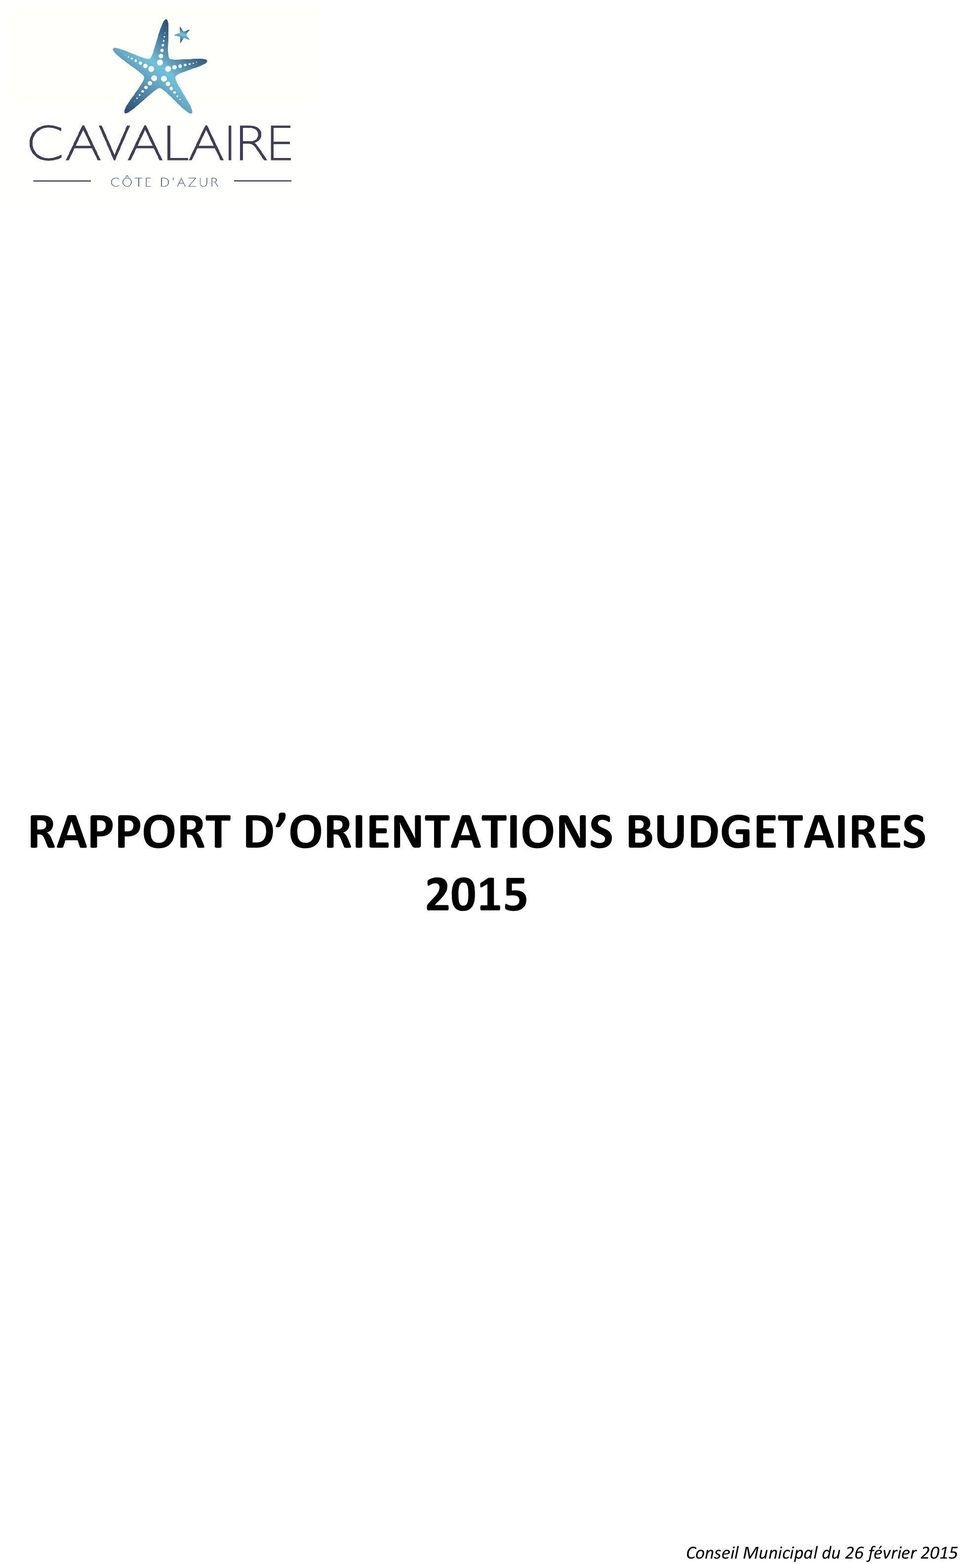 BUDGETAIRES 2015